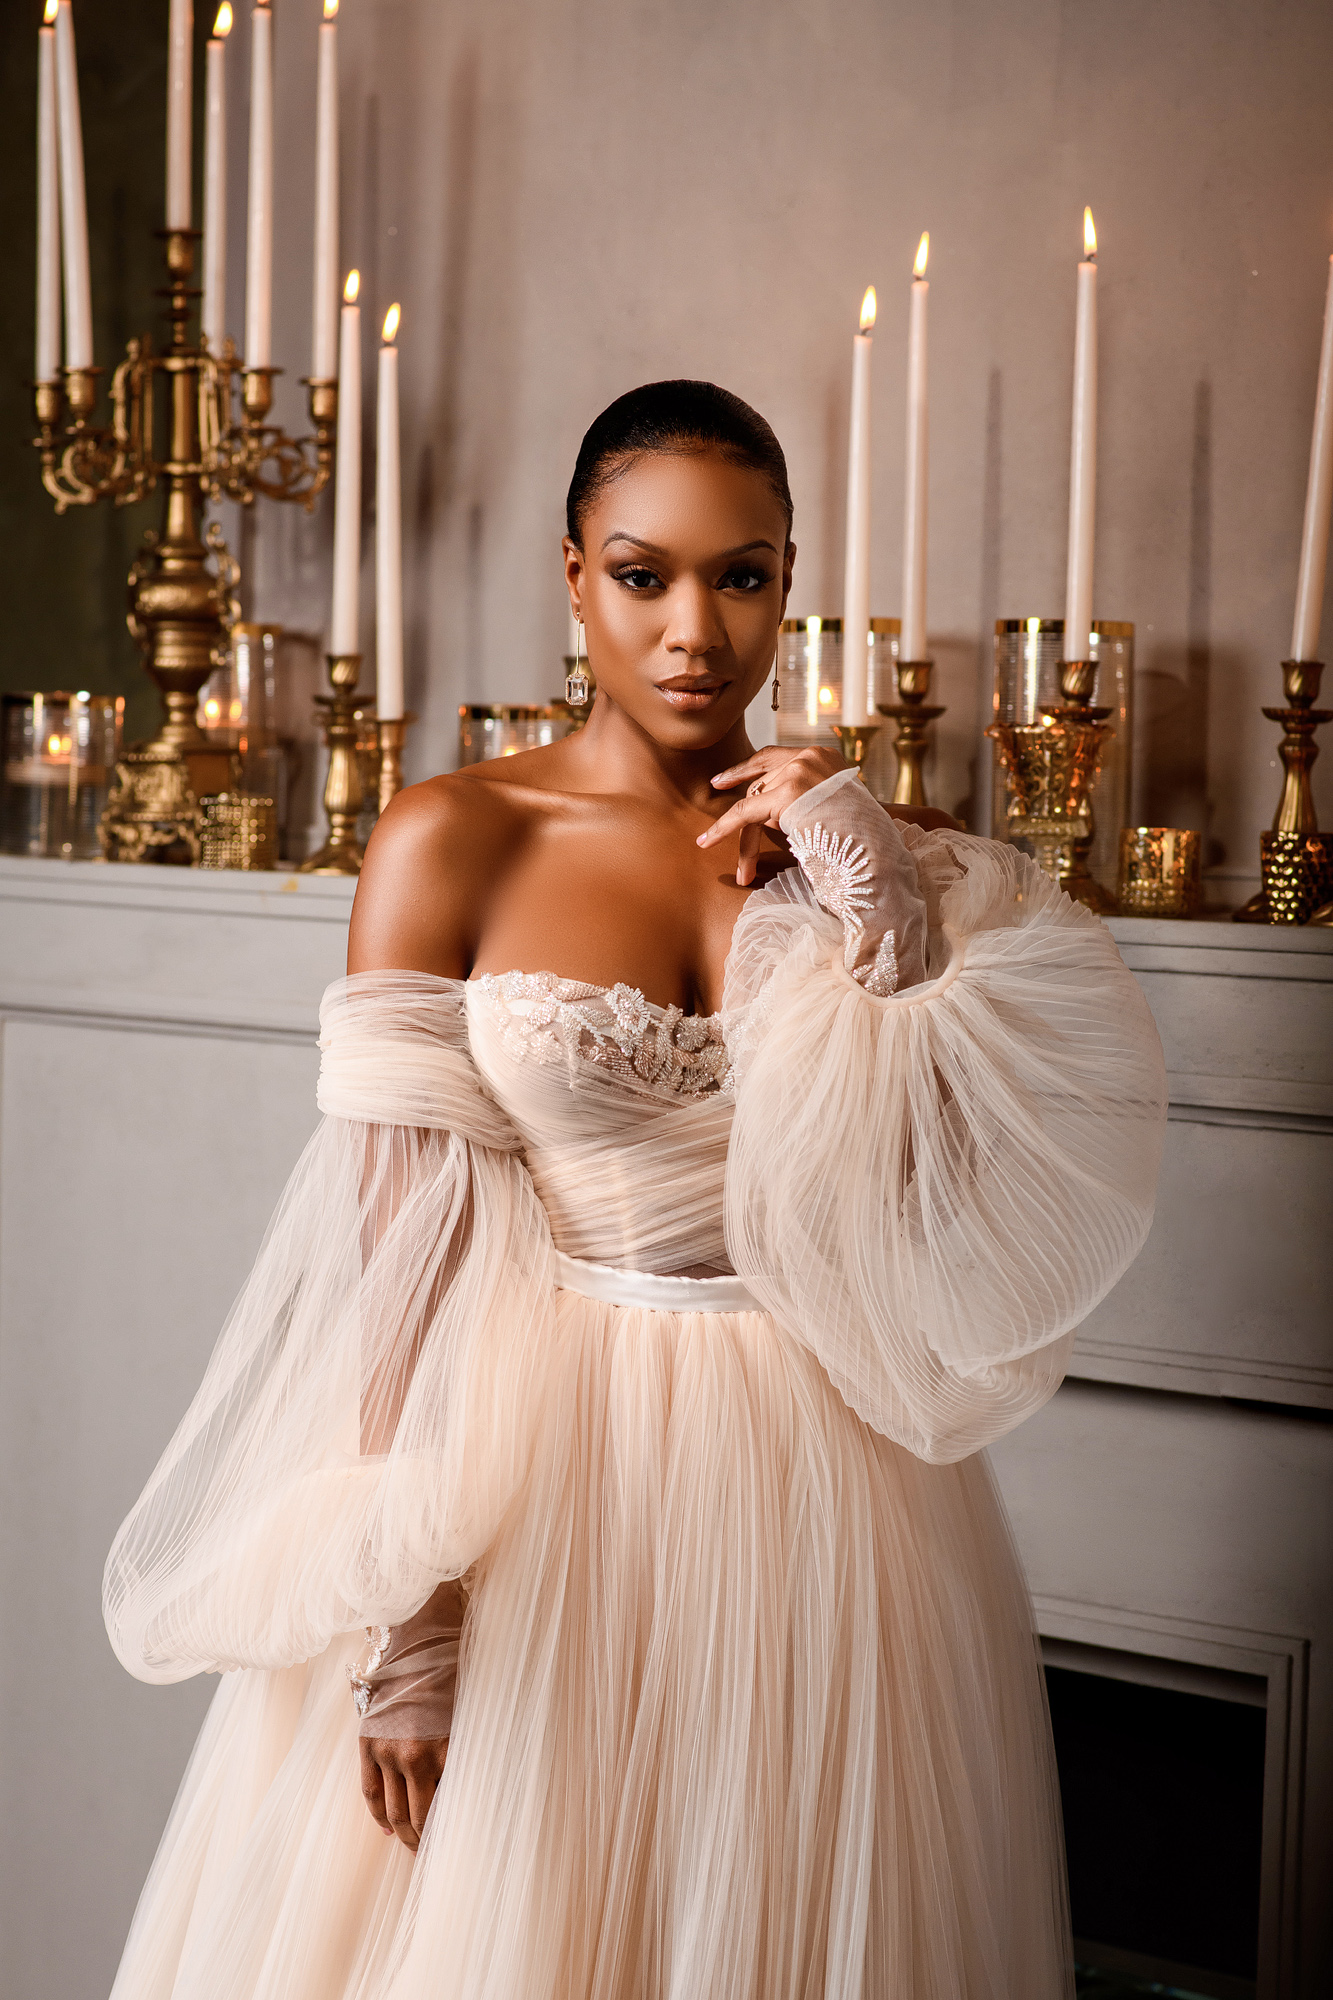 Stunning portrait of bride in blush pink strapless couture gown and bell sleeves- photo by Joshua Dwain Photography